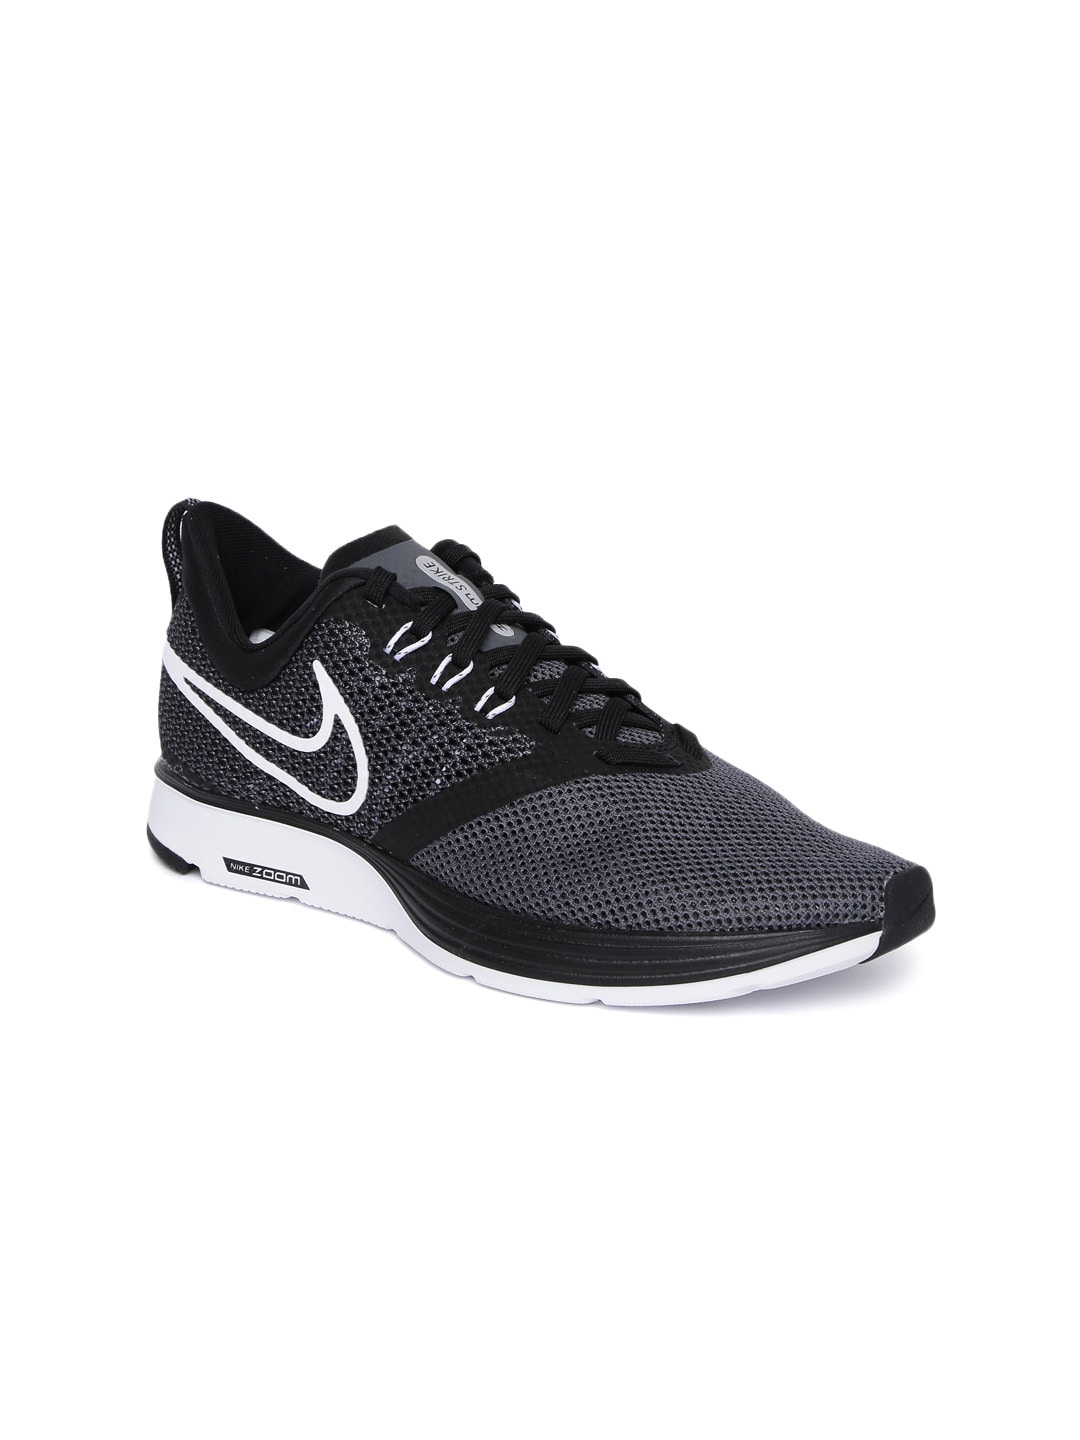 Nike - Shop for Nike Apparels Online in India  ea46a0936